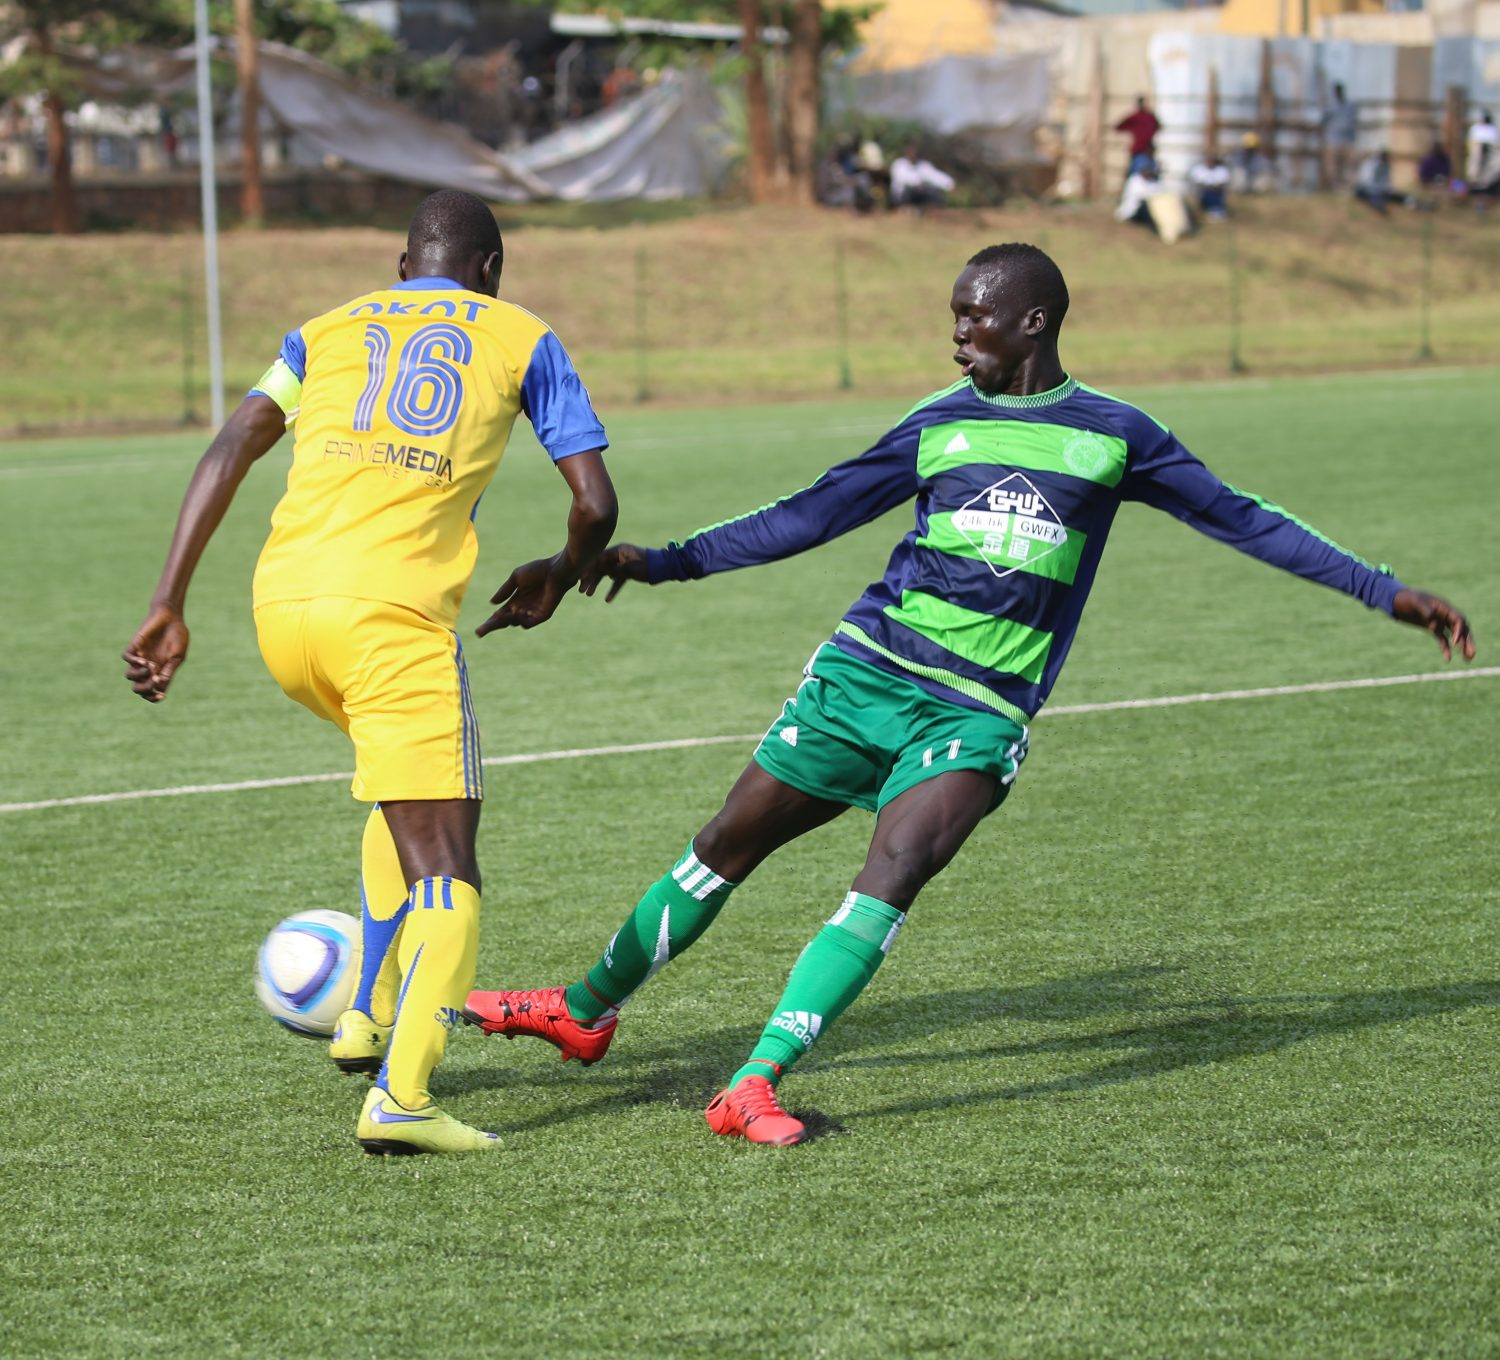 KCCA FC captain Denis Okot (L) beats his man during the FUFA Uganda Cup Round of 64 at Lugogo, KCCA FC won the tie 6-1 to advance to the round of 32